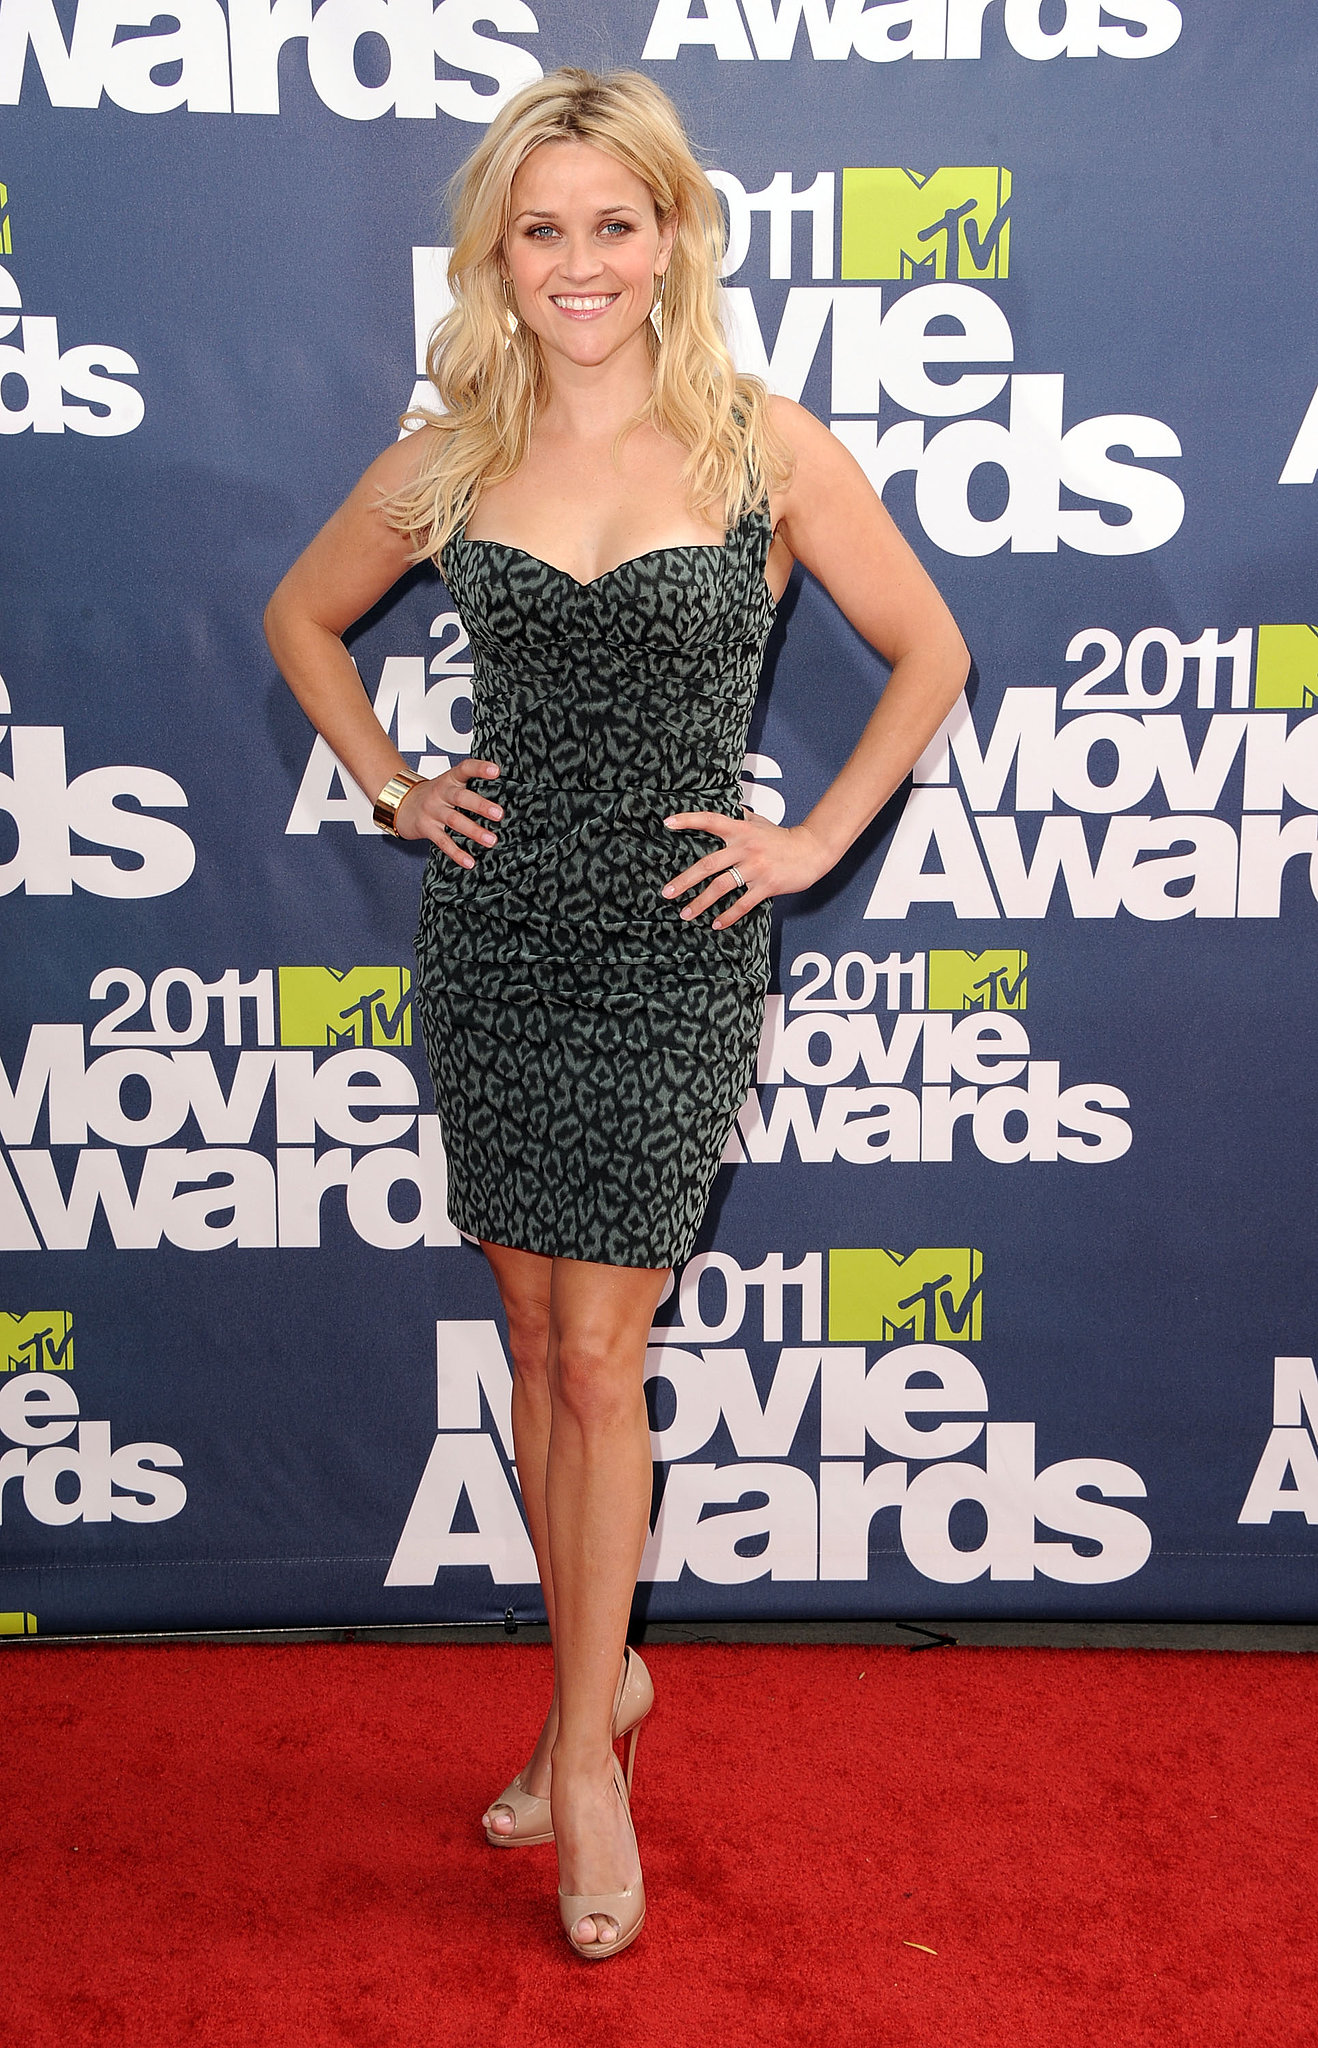 Reese looked fierce in a leopard-print Zac Posen mini at the MTV Movie Awards in 2011.